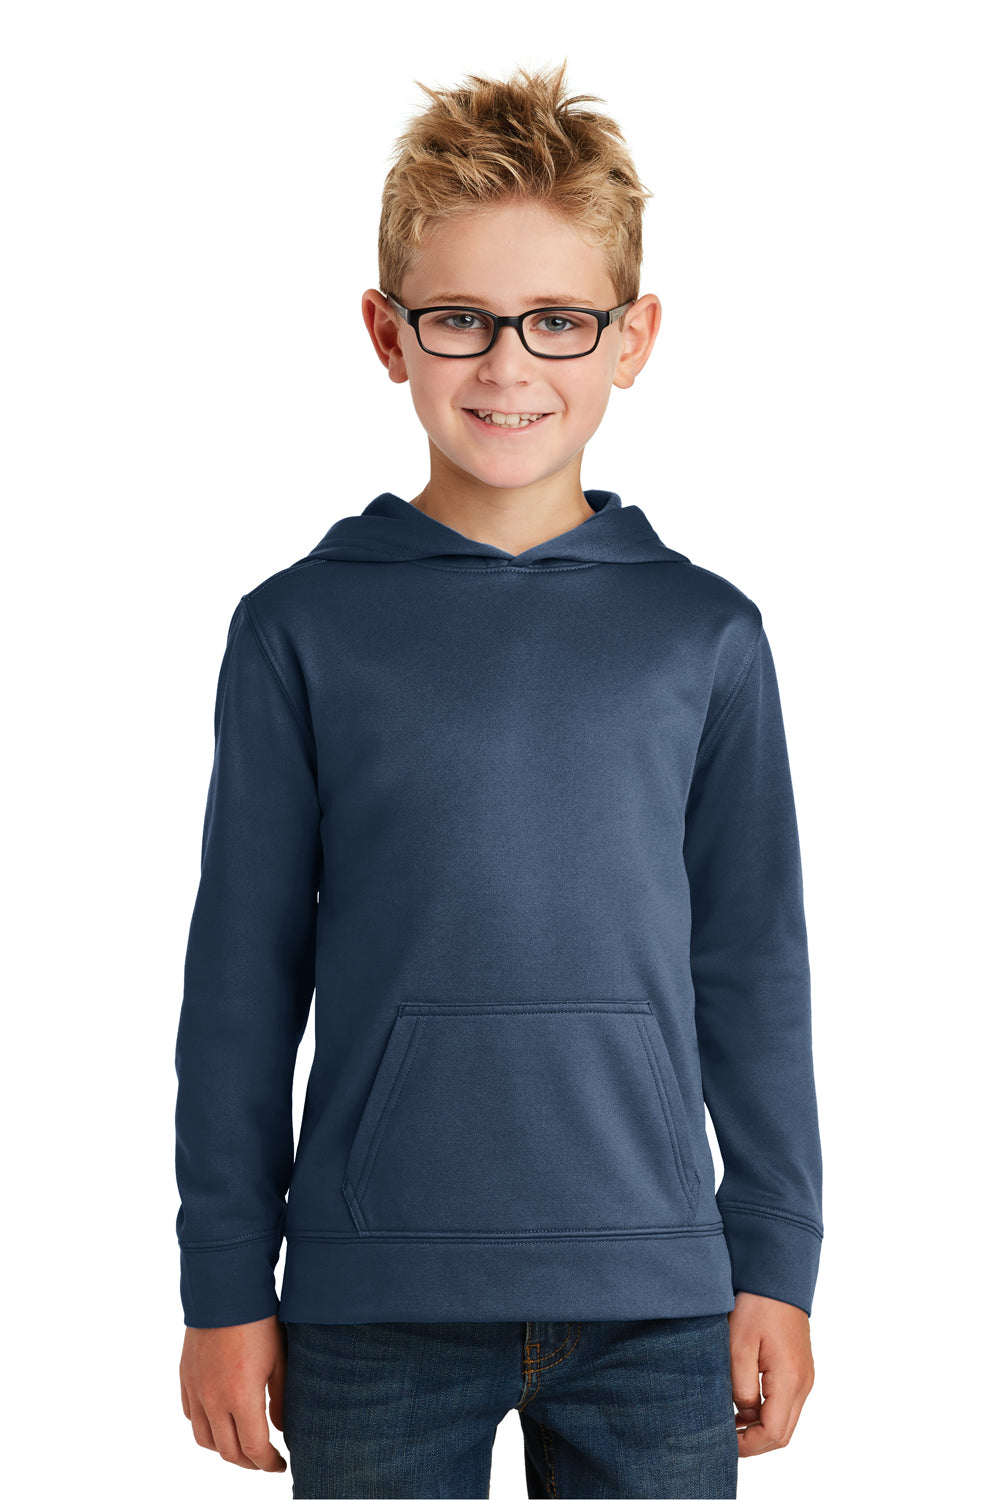 Port & Company PC590YH Youth Dry Zone Performance Moisture Wicking Fleece Hooded Sweatshirt Hoodie Navy Blue Front